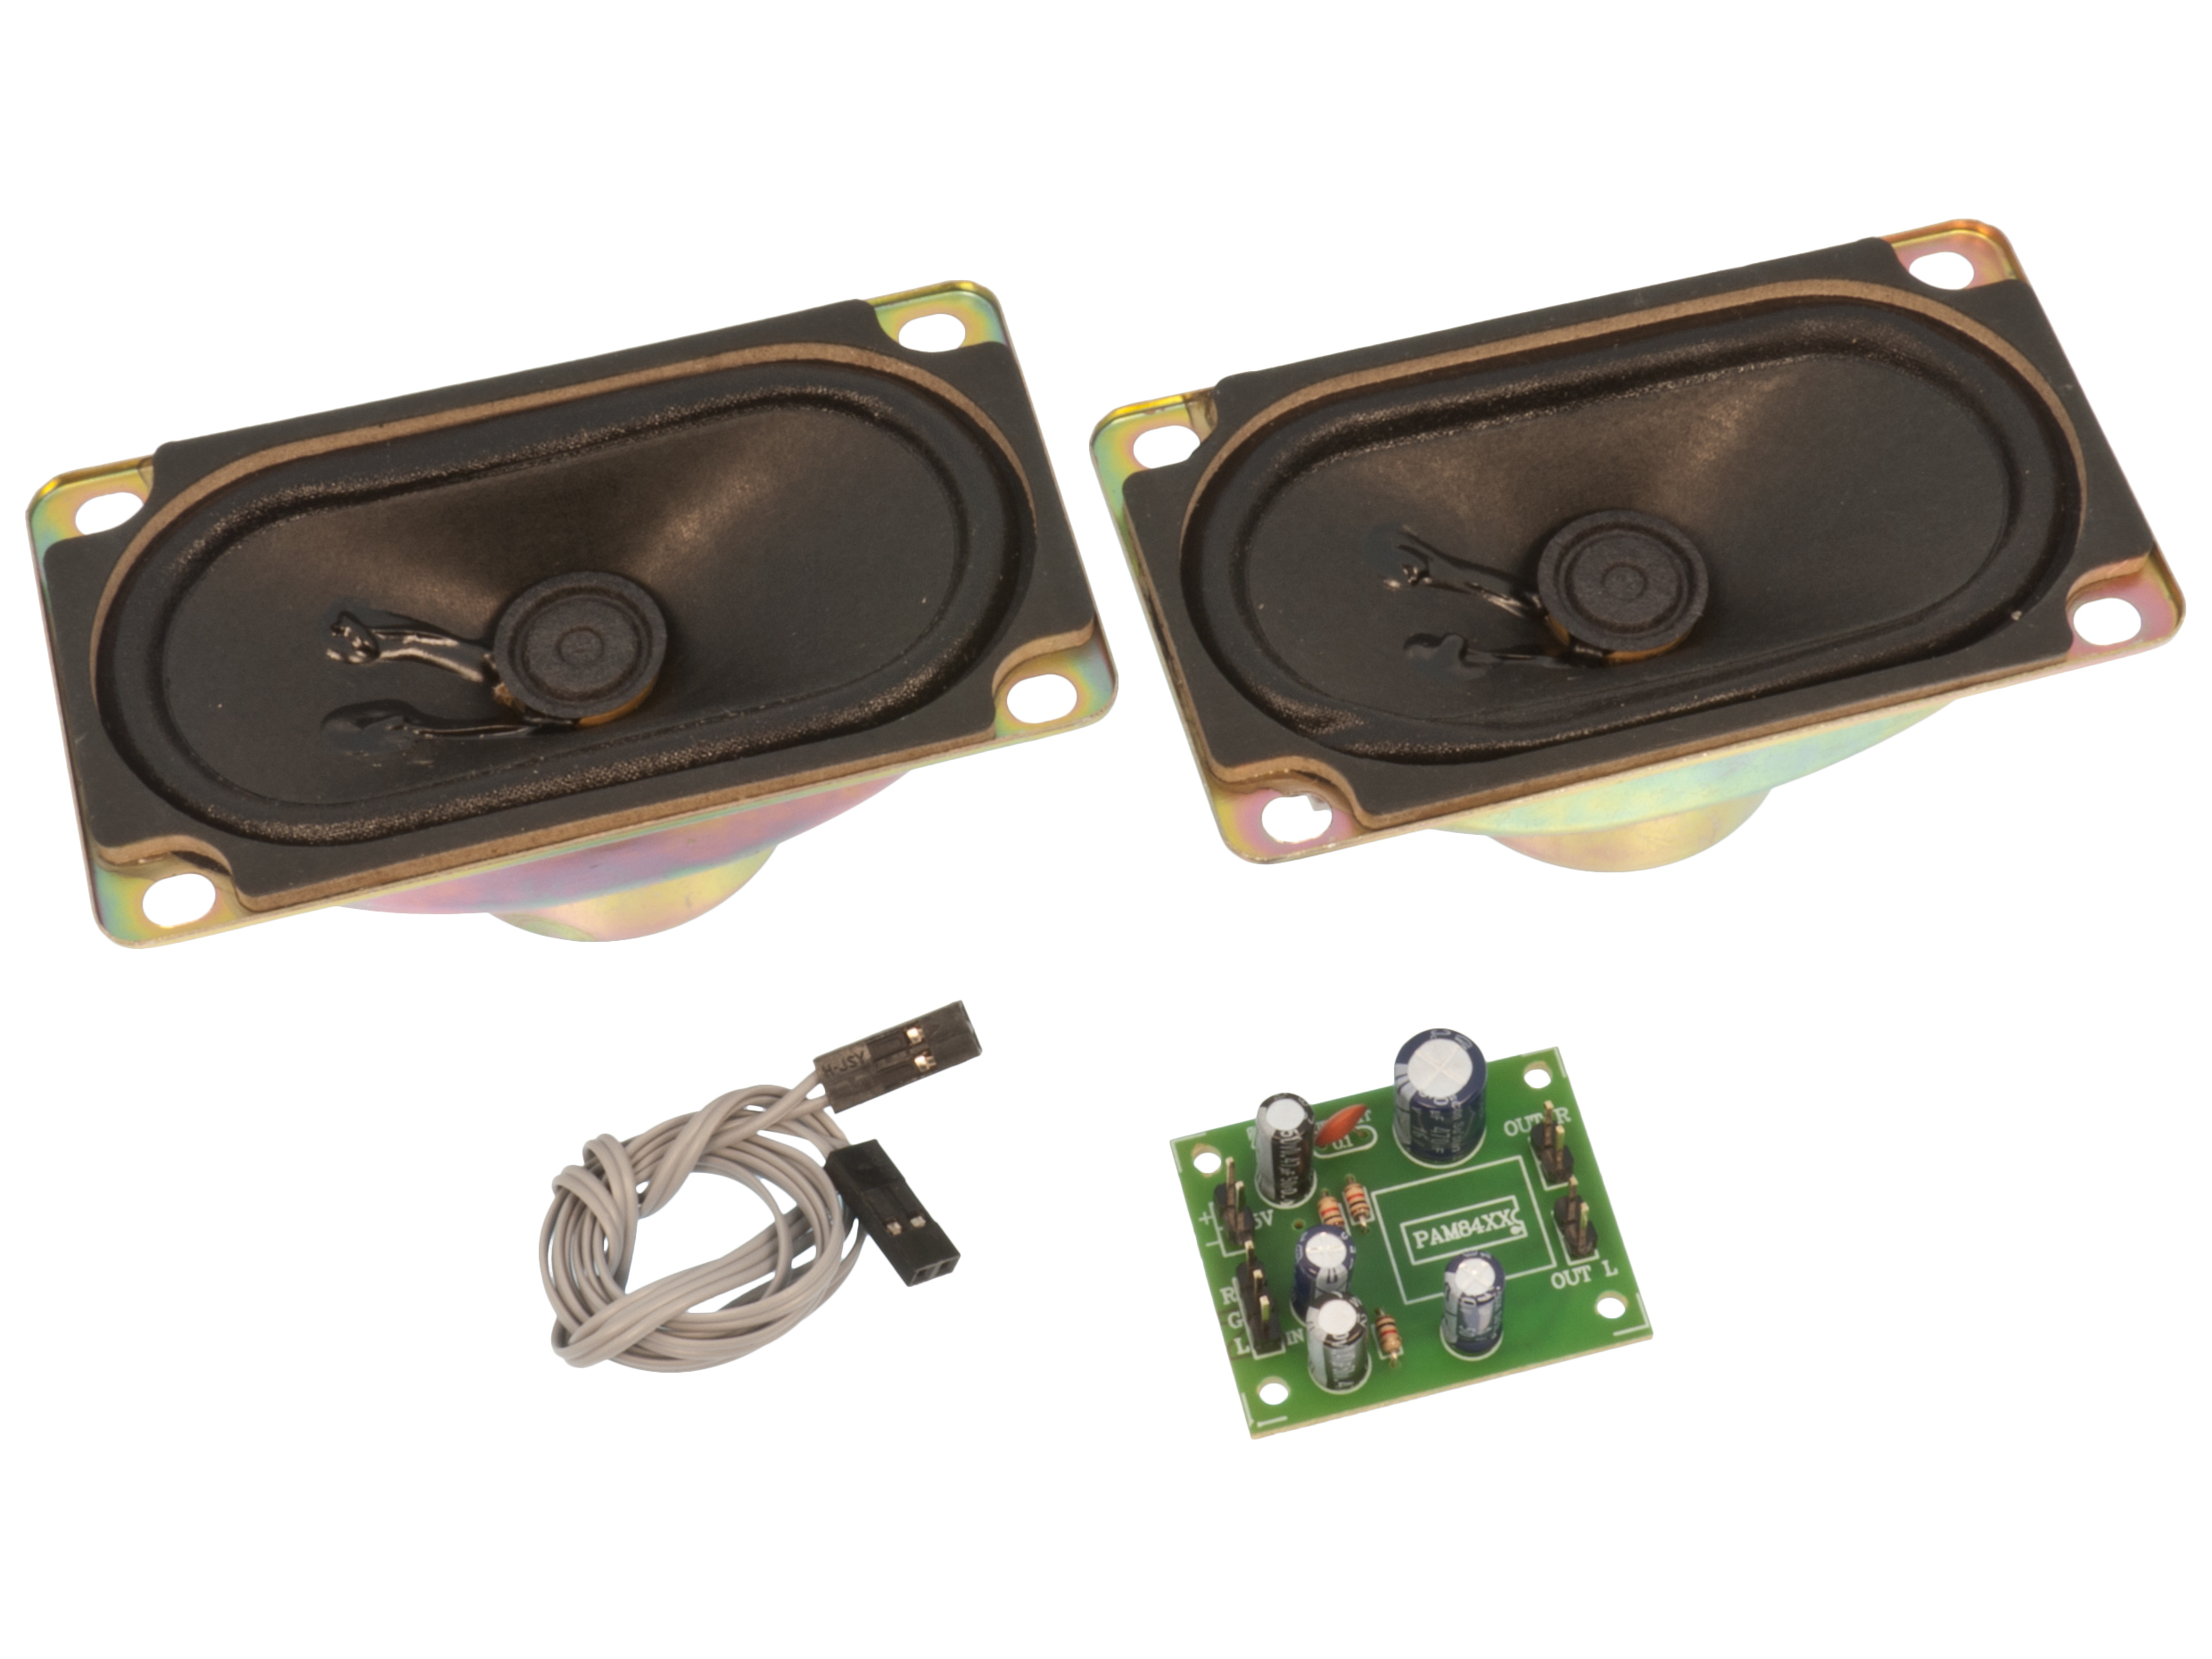 Amplifier 5W stereo Class-D with speaker